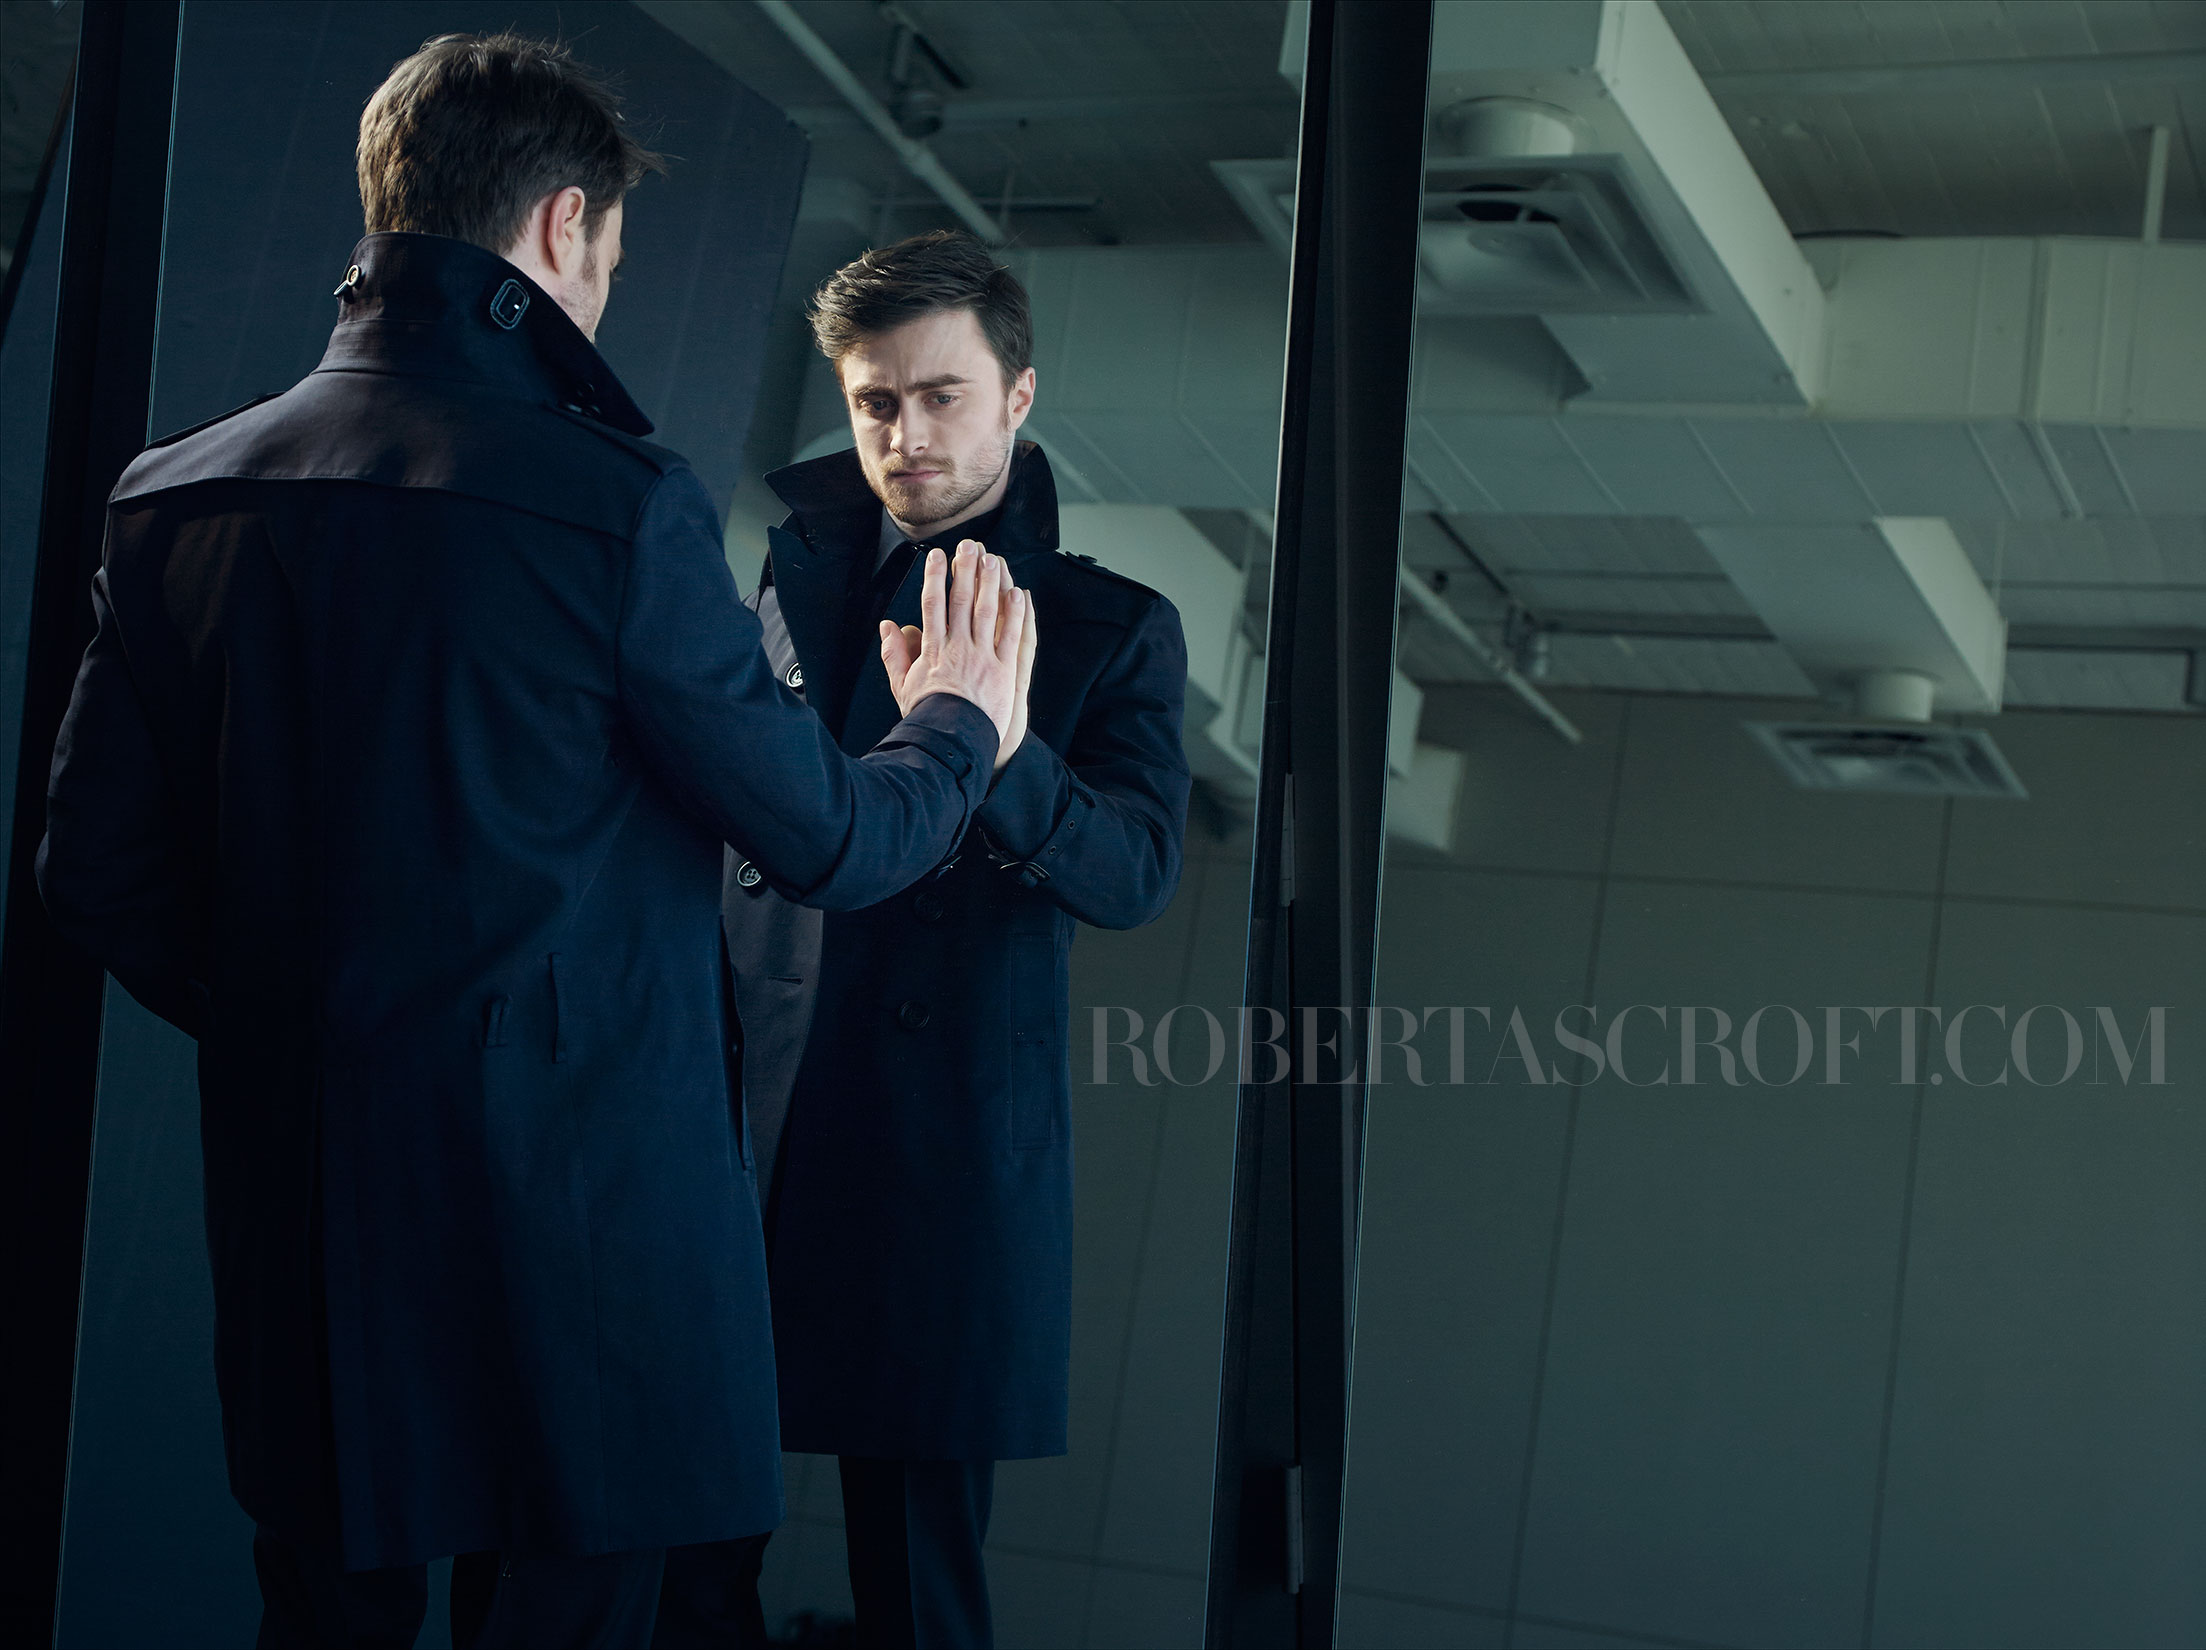 Daniel-Radcliffe-by-Robert-Ascroft-04